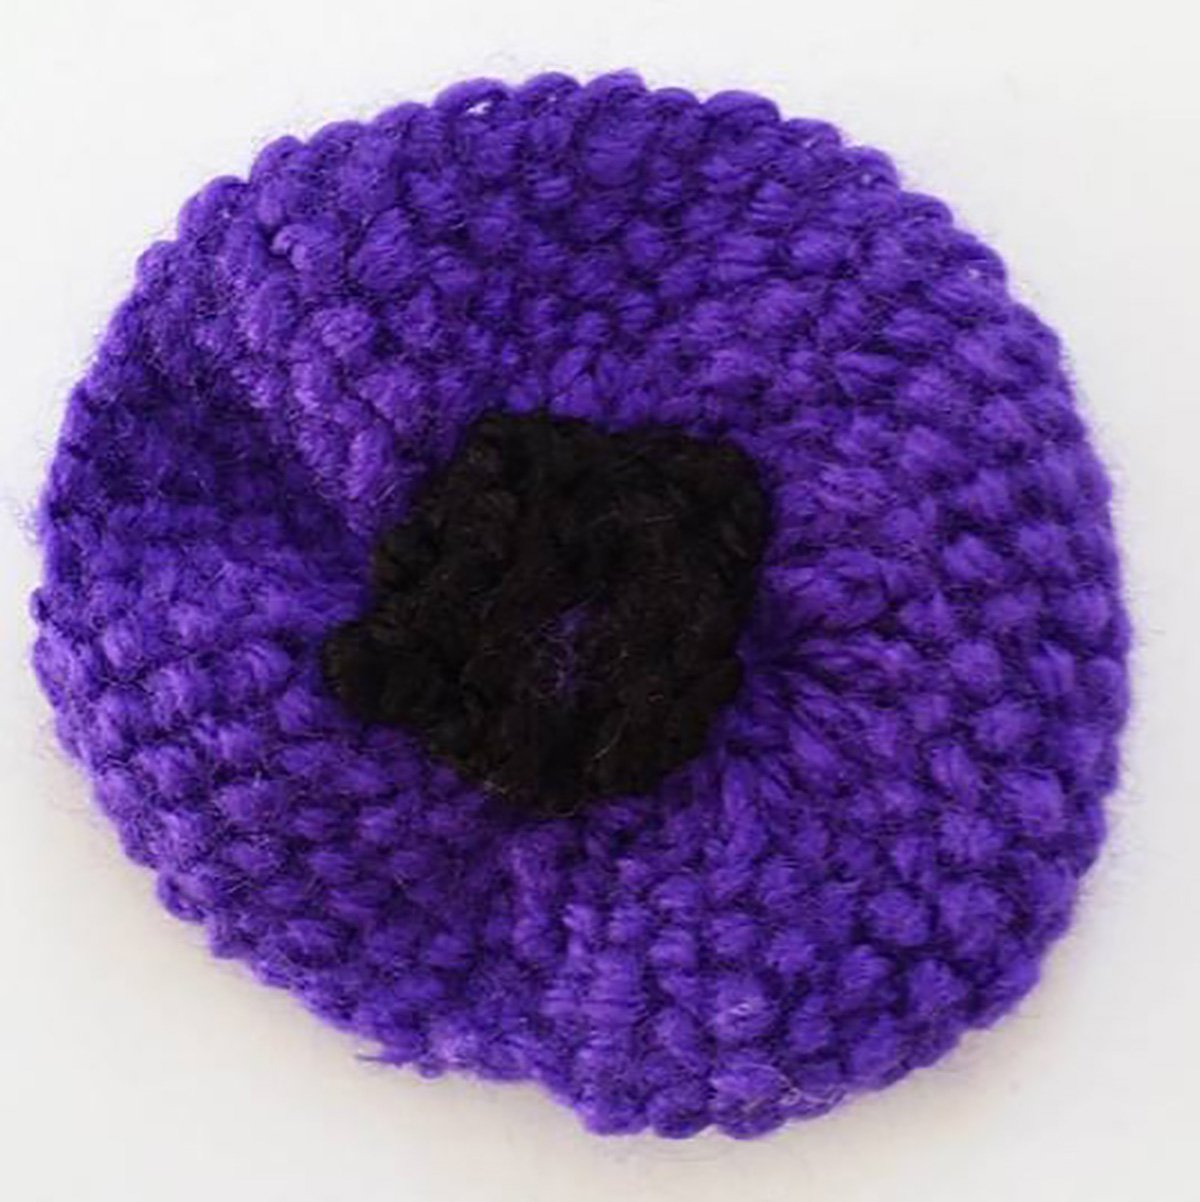 PURPLE POPPIES AND REMEMBRANCE MERCHANDISEWe?re delighted to announce that this years? purple poppies will go on sale on the 1st September. And to mark this special 100th Anniversary year we?ve introduced a brand new range of products too. Do take a look below! PURPLE POPPIESOur traditional purple poppies have been hand made for us by our amazing team of volunteers. They?re priced at just ?3 each which includes postage and packing. You can choose from the ?human? version with pin back, or the specially designed animal version which has an adjustable Velcro fastening to fit safely and comfortably on collars or leads. Poppies are approximately 5 cm in diameter.Numbers are limited, and poppies have sold out in previous years so please order as early as possible to avoid disappointment.Please note every one of these poppies has been hand made with love. Each will be slightly different ? some will be knitted, some crocheted, and there will be variations in colour. If you have a preference as to knitted or crocheted please let us know when you order and we?ll do our best to oblige, but, as we hope you understand, this can?t be guaranteed.